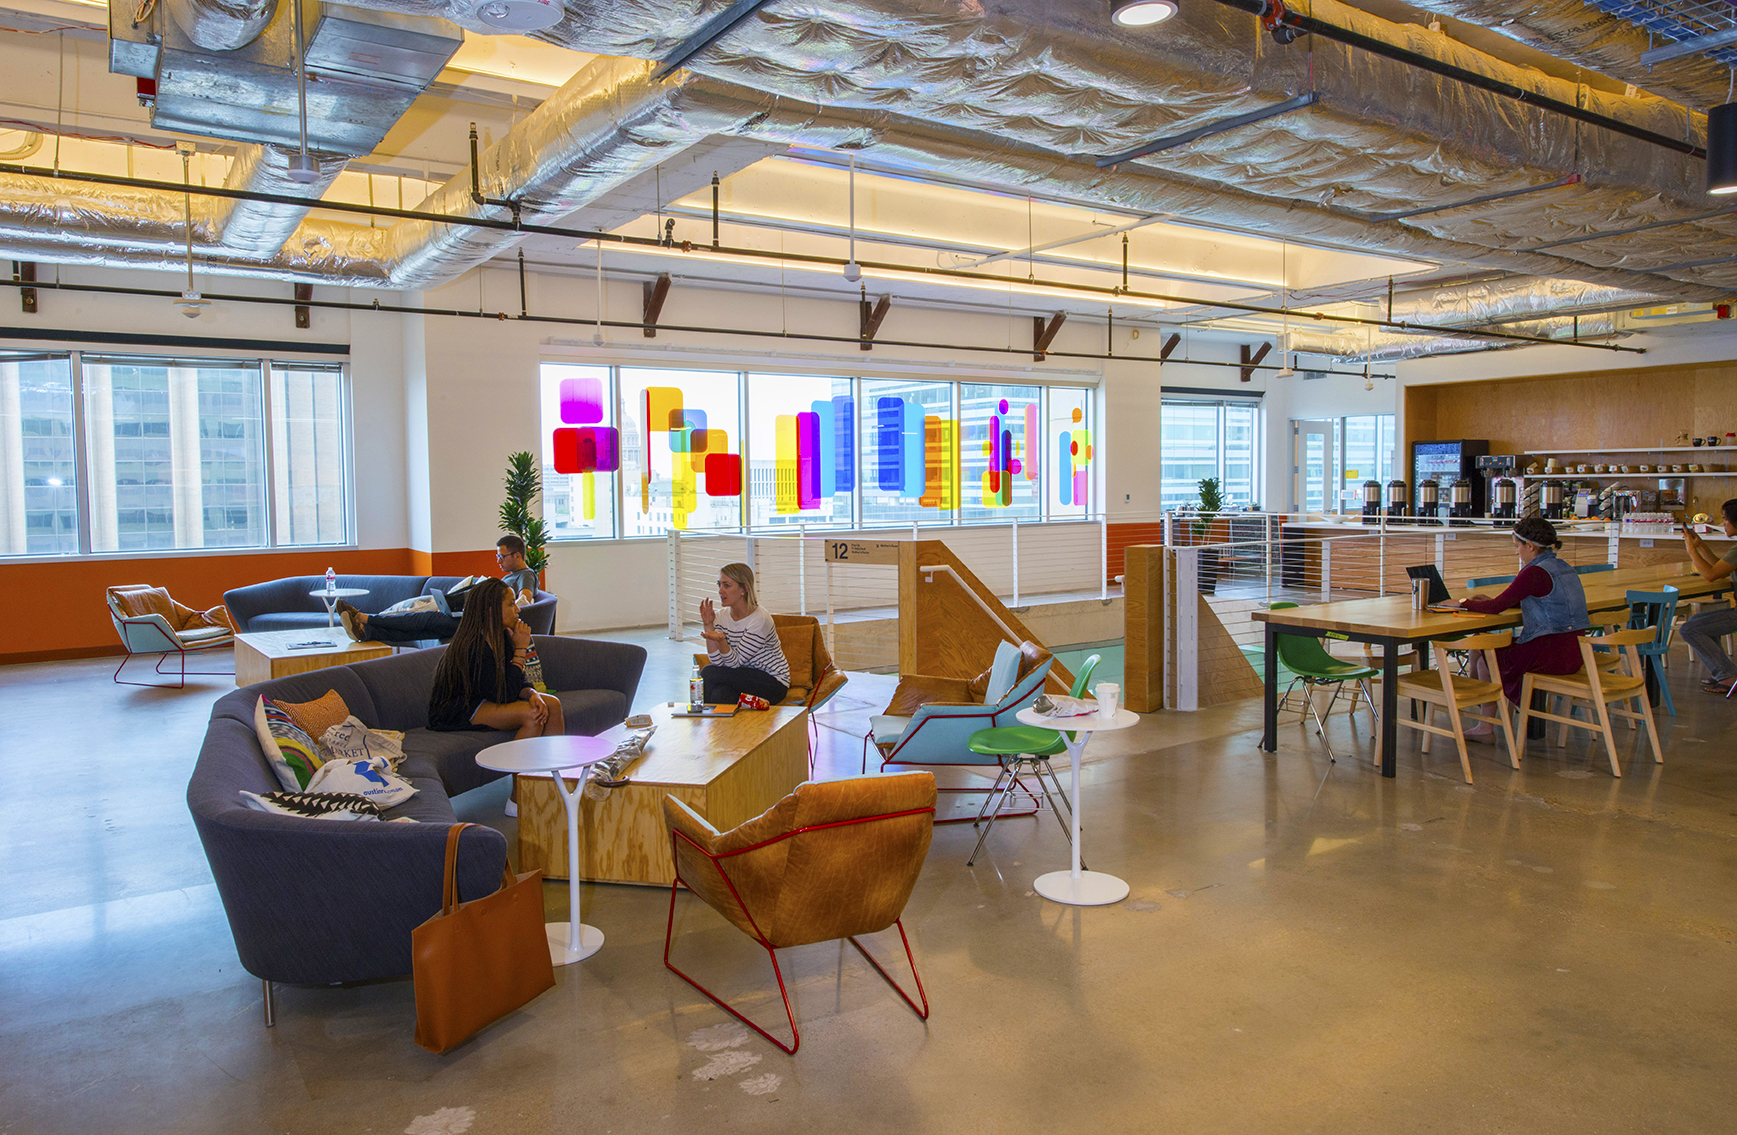 4-Story Project at Facebook Office